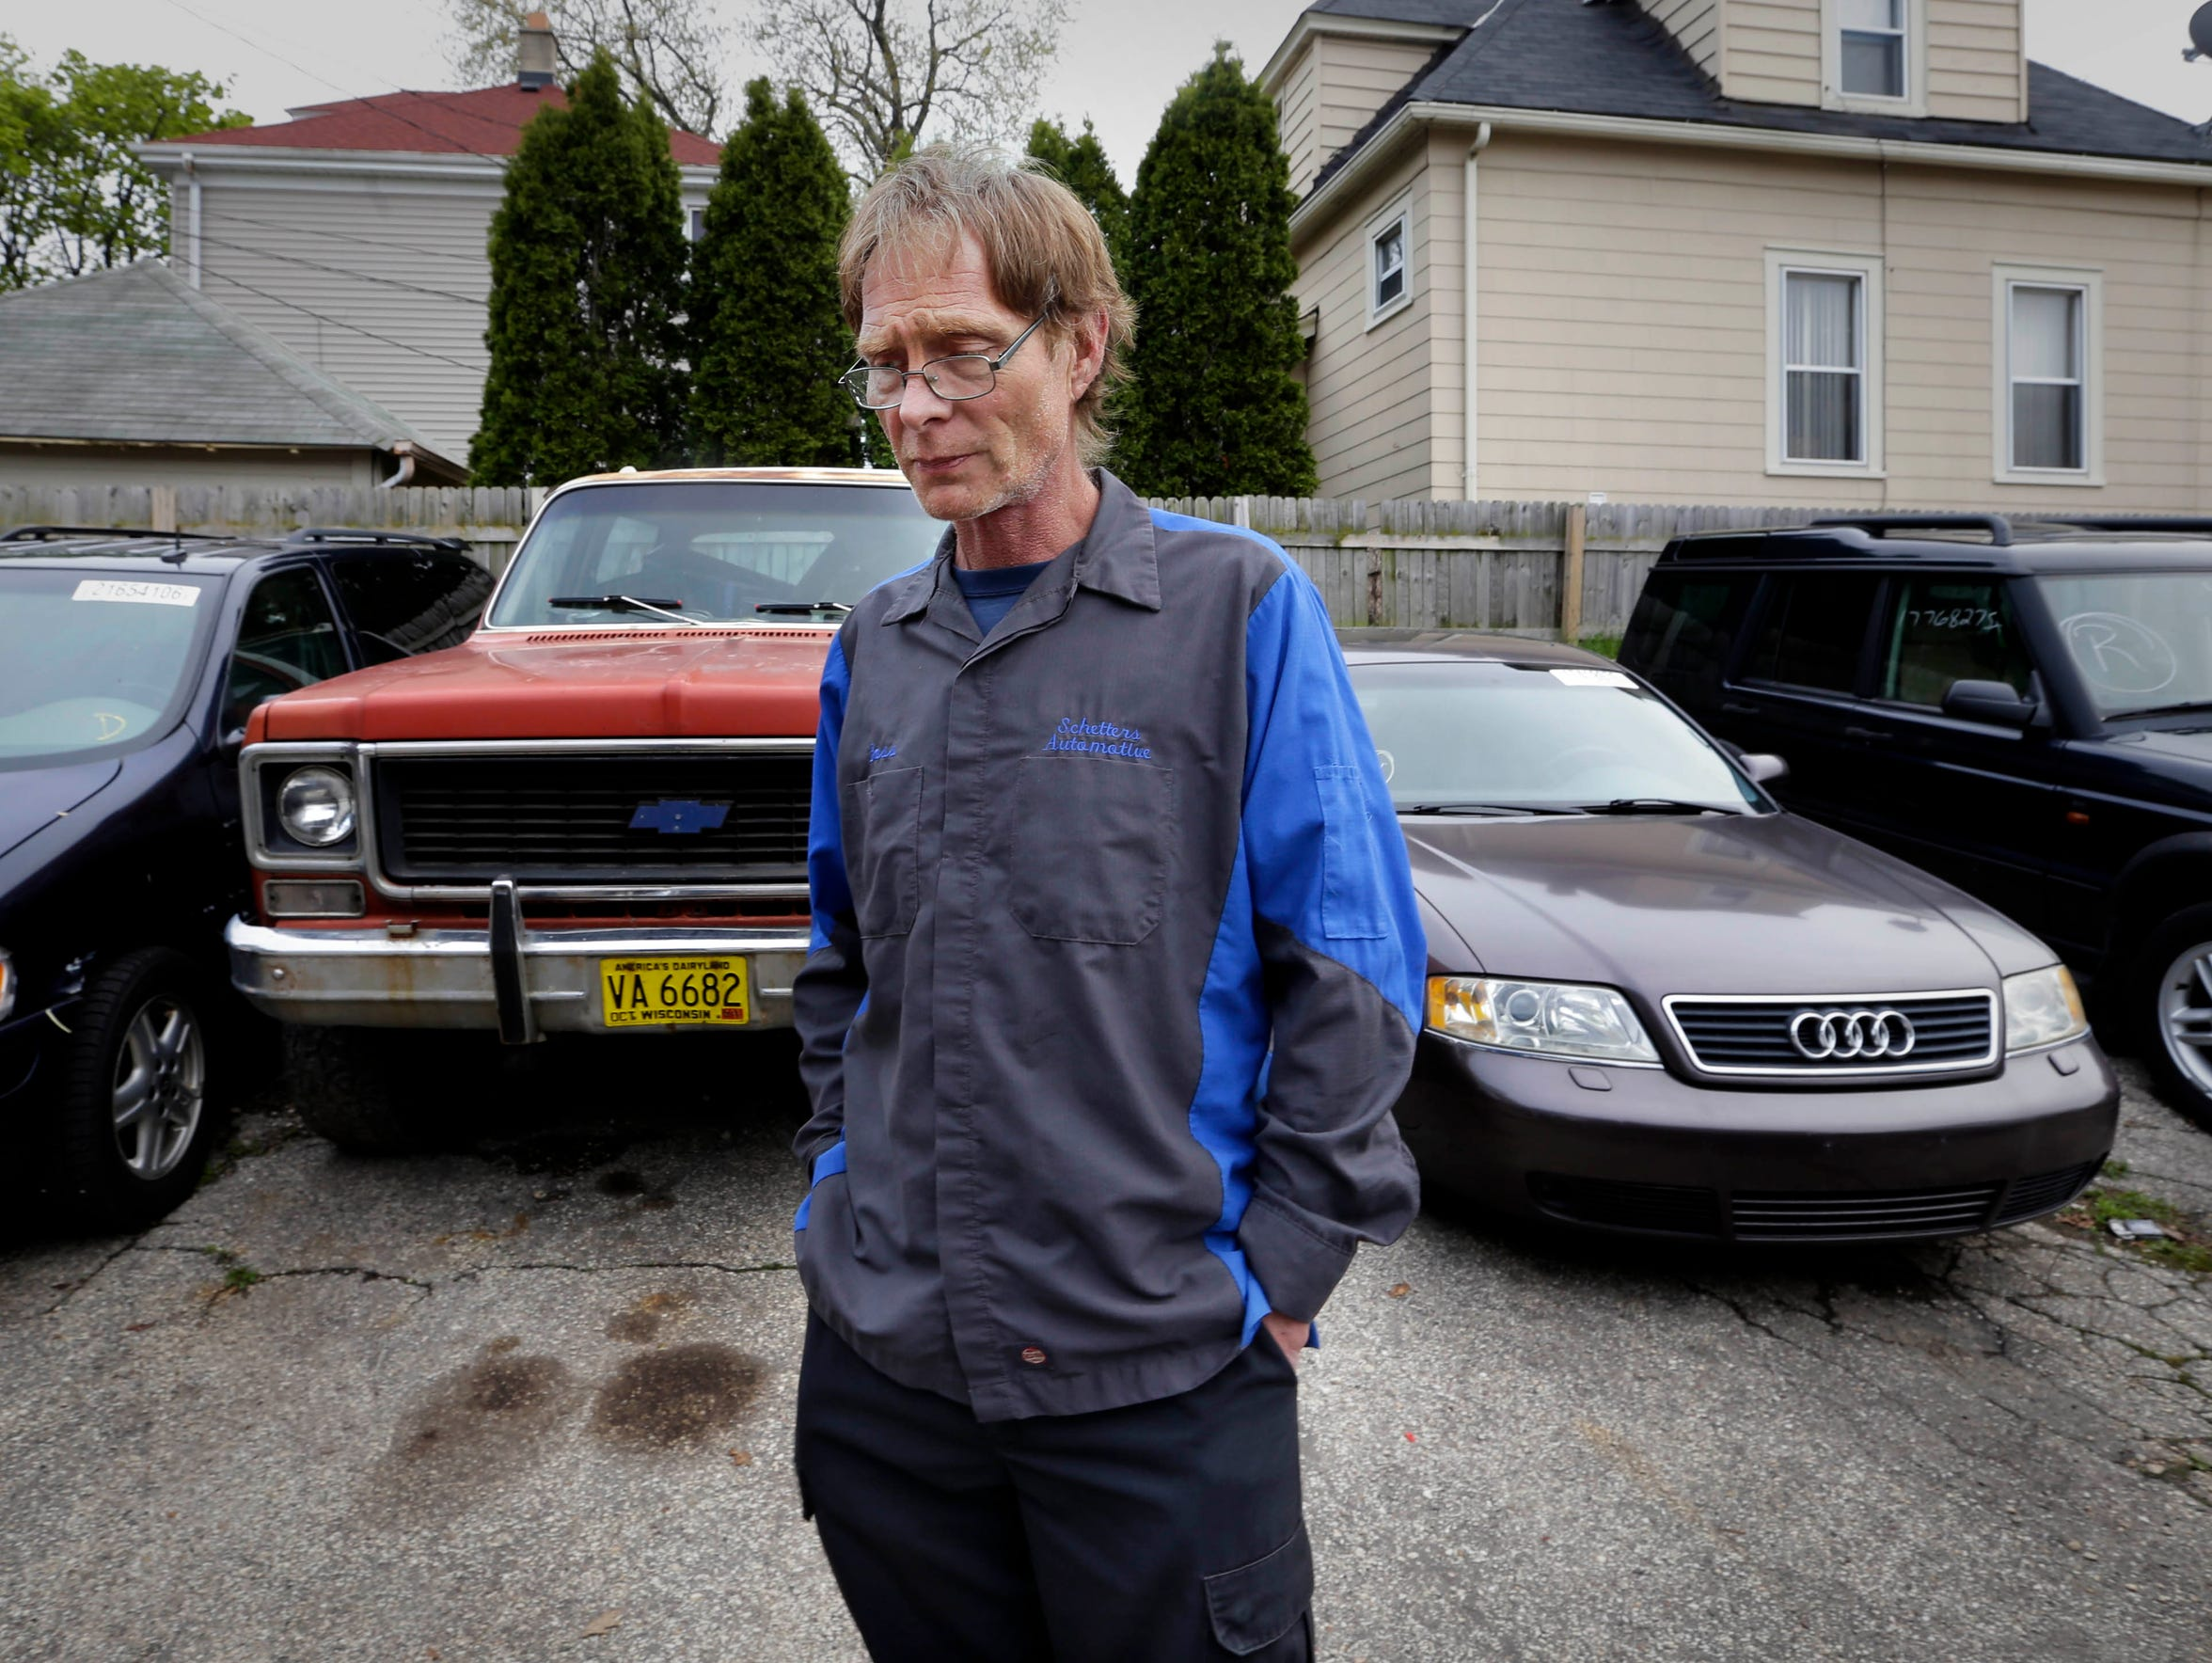 Ken Schetter, who owns an automotive repair shop in